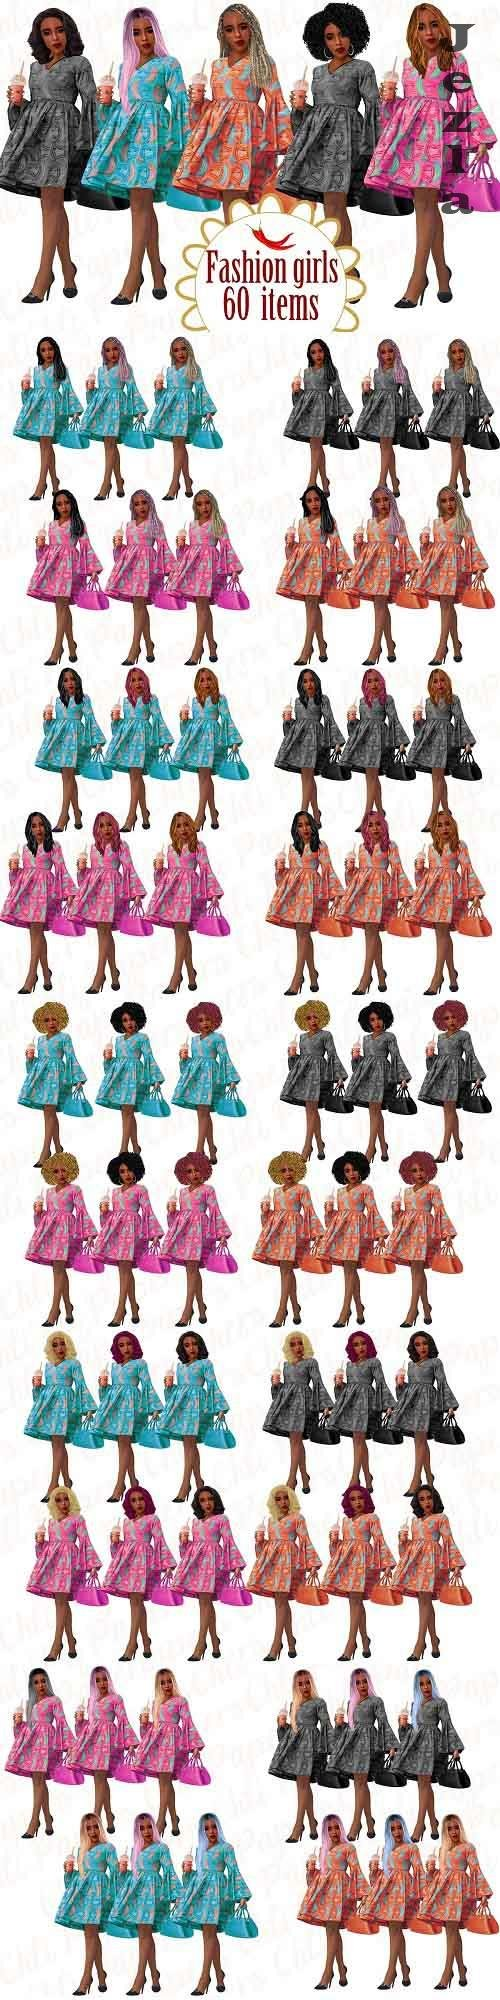 Fashion girl clipart,Afro girl clipart - 5135039